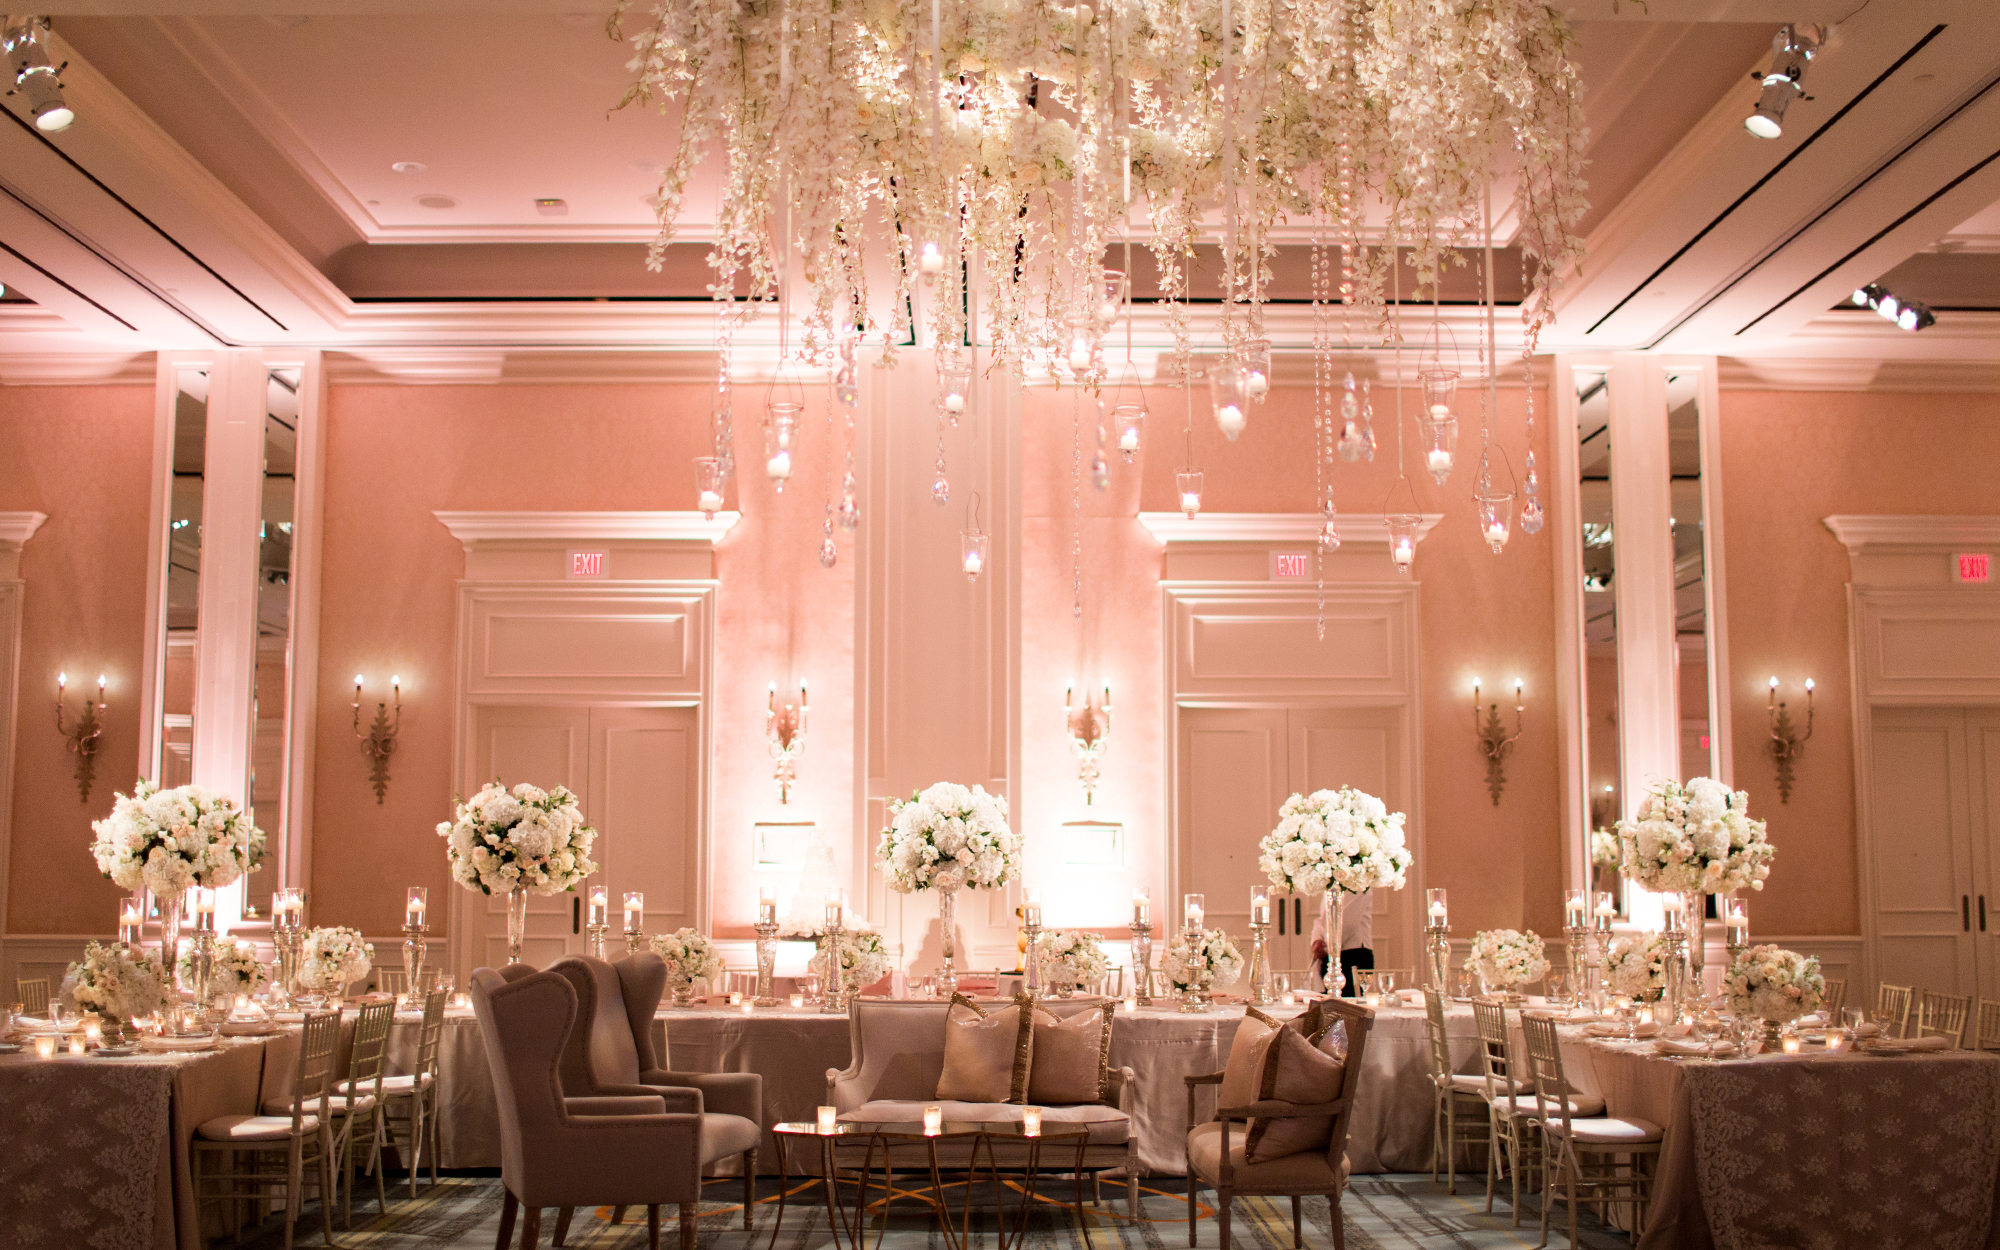 Blush Room Uplighting at The Four Seasons Las Colinas